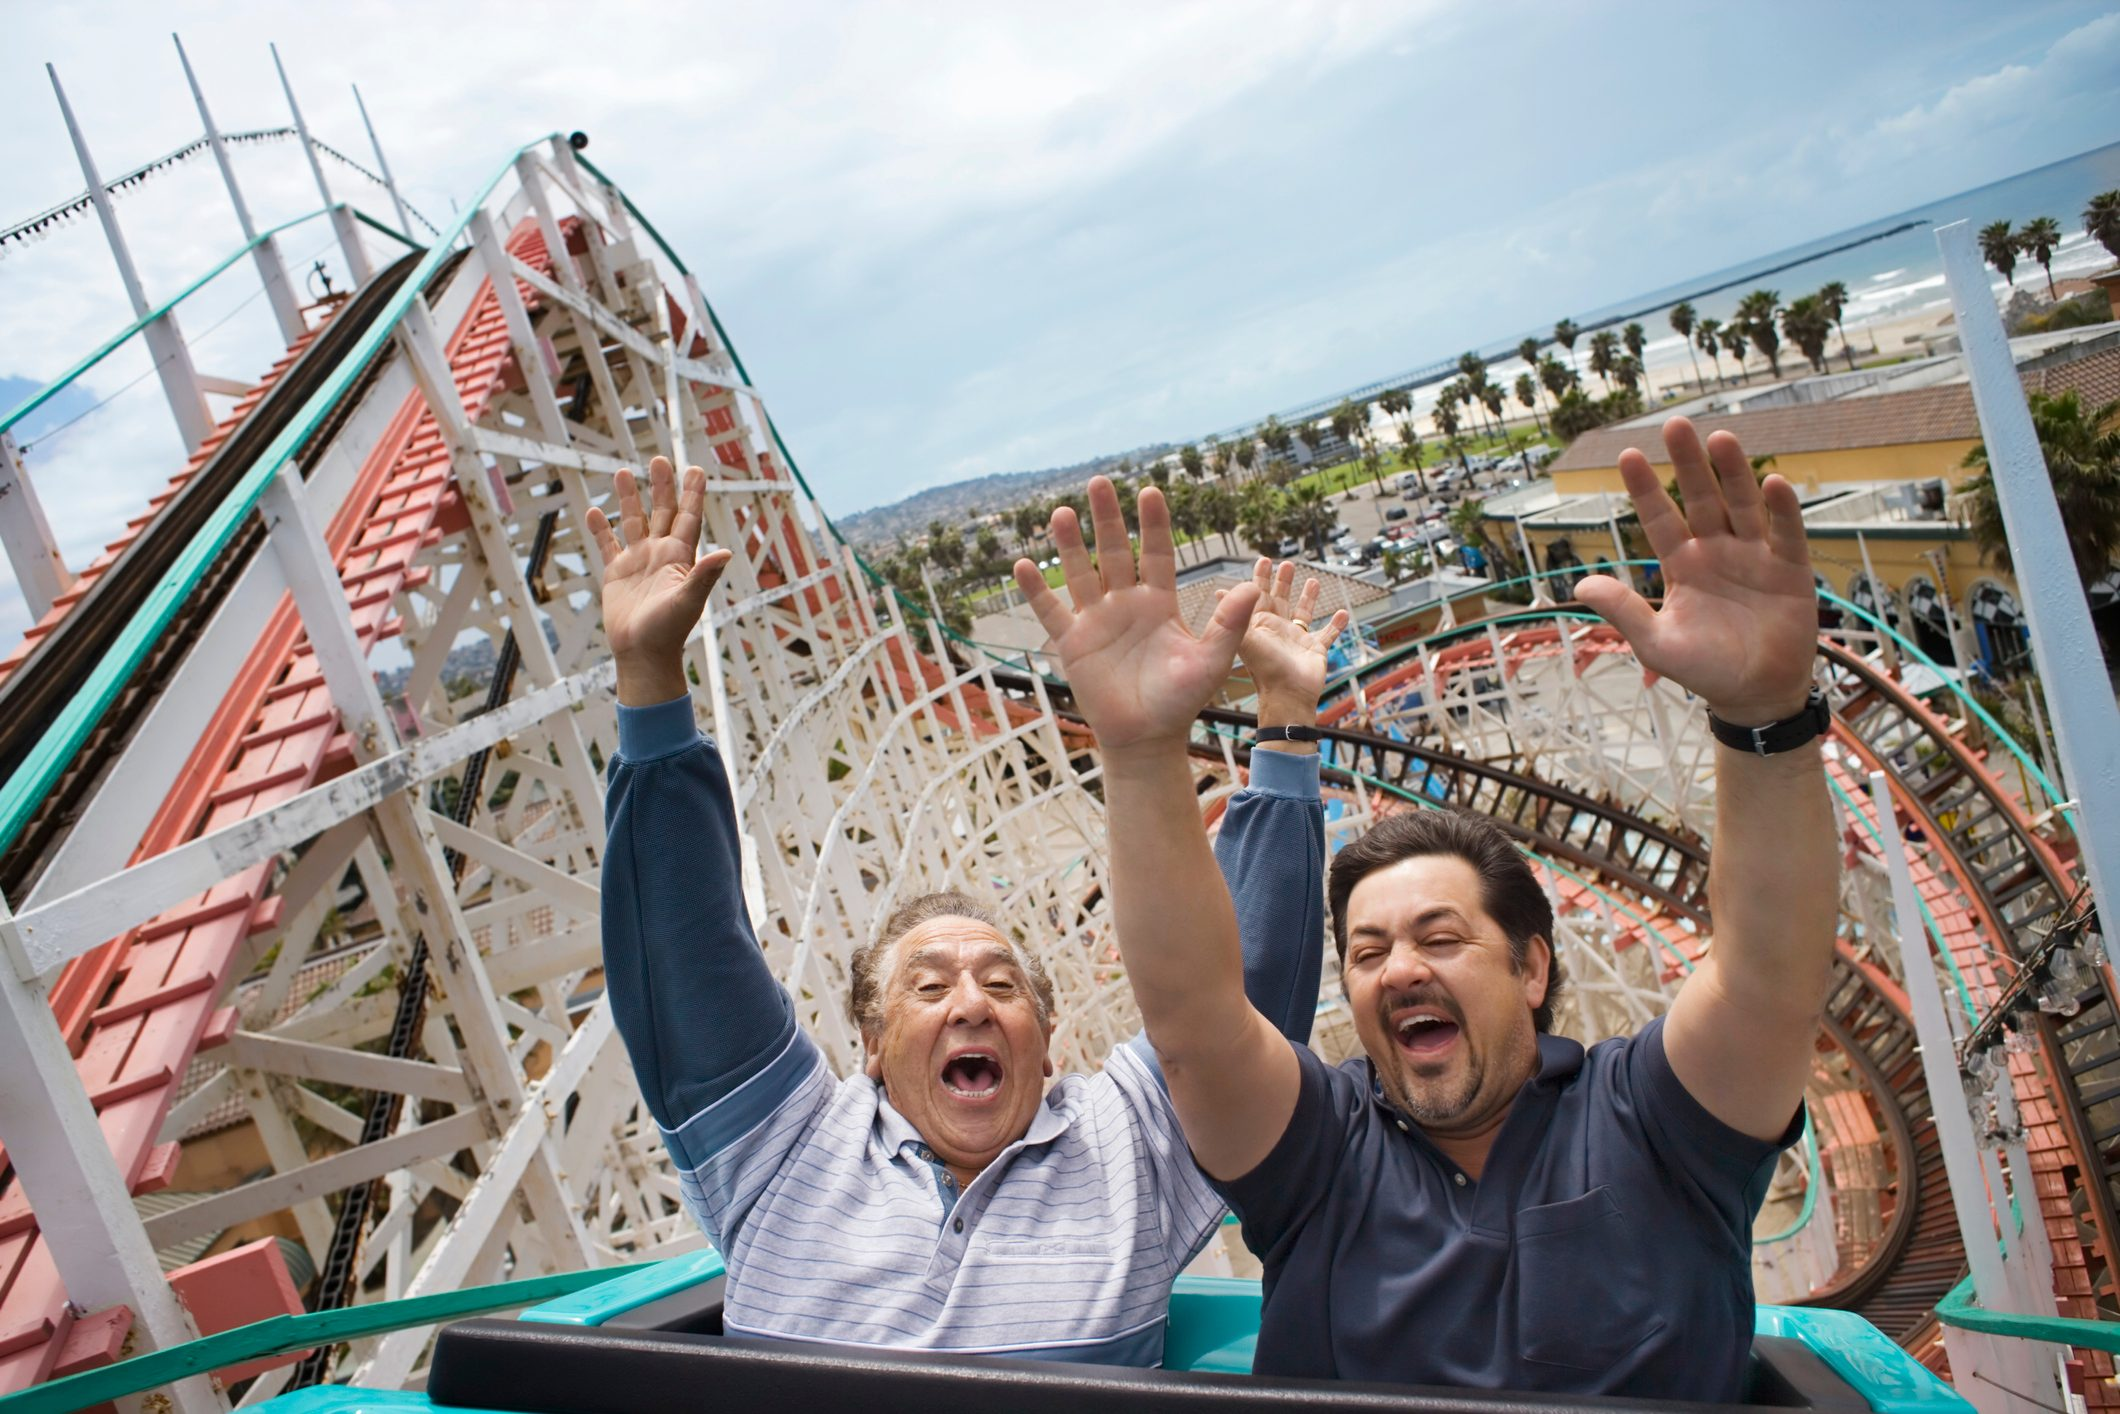 father and son riding roller coaster on Father's Day